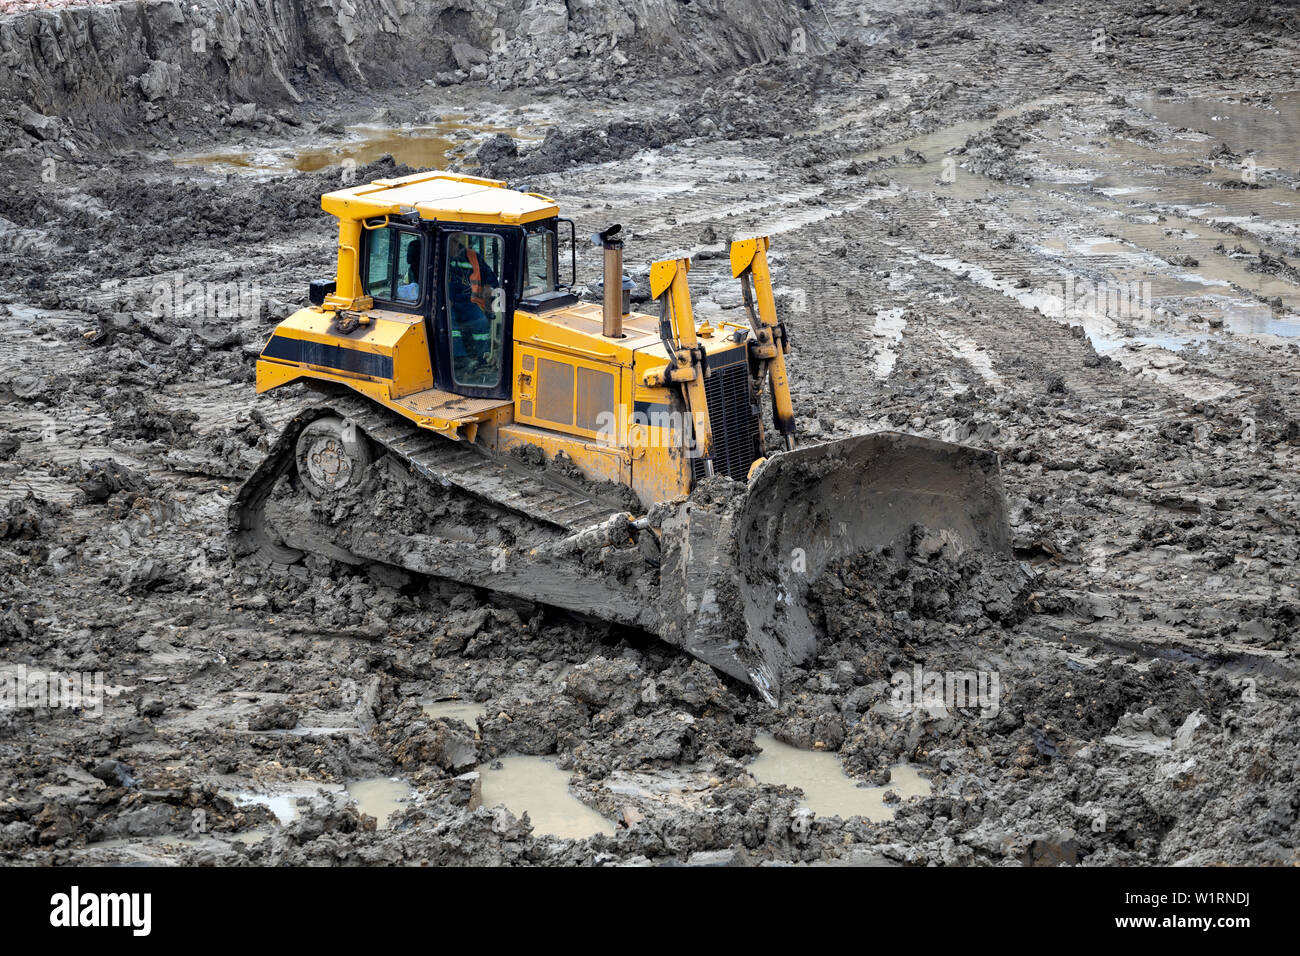 Push dirt with a dozer. Bulldozer working working at construction site. - Stock Image